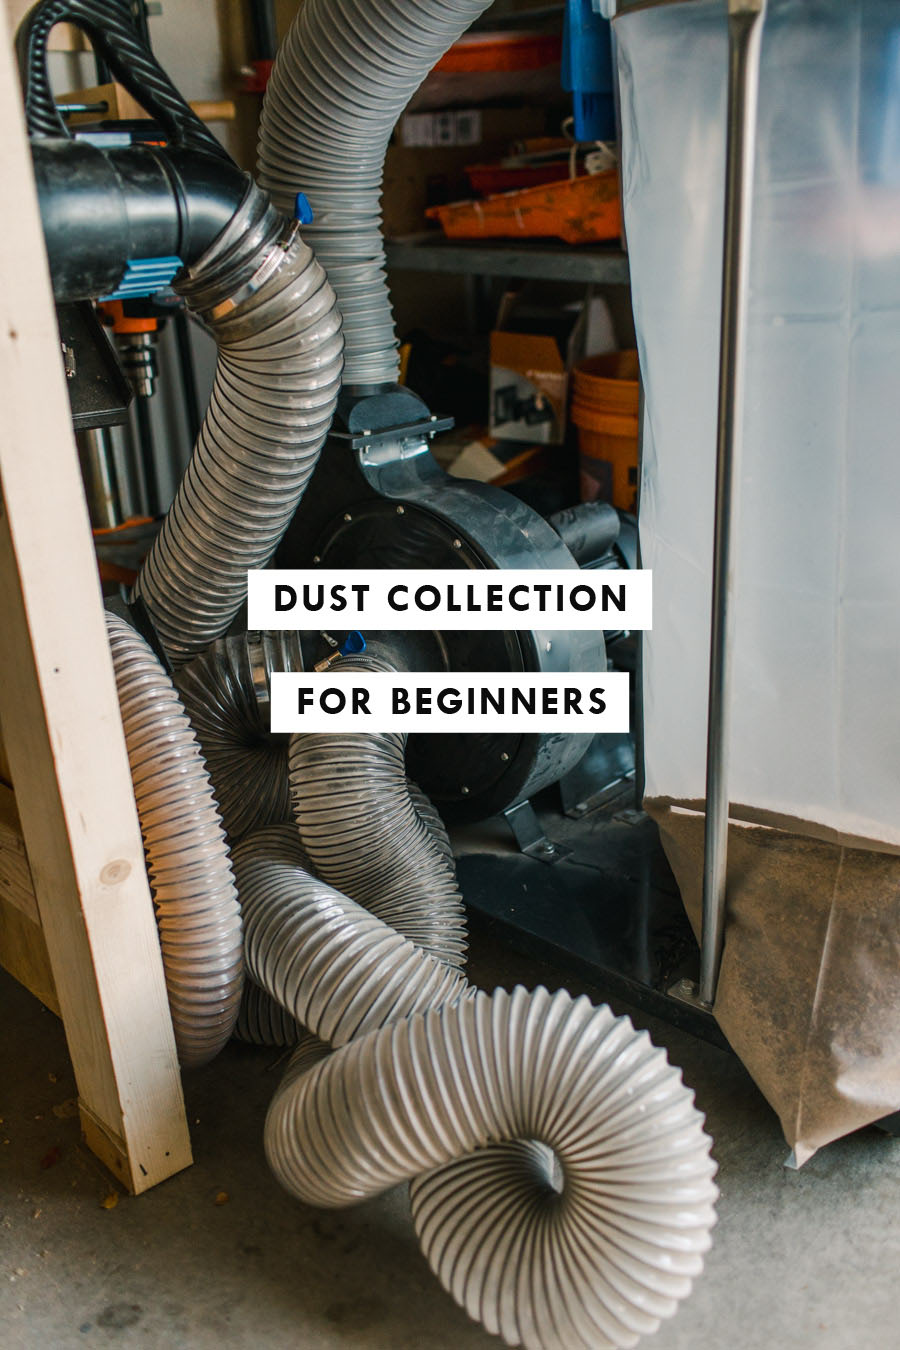 Dust Collection For Beginners Everything You Need to Know to Get Started